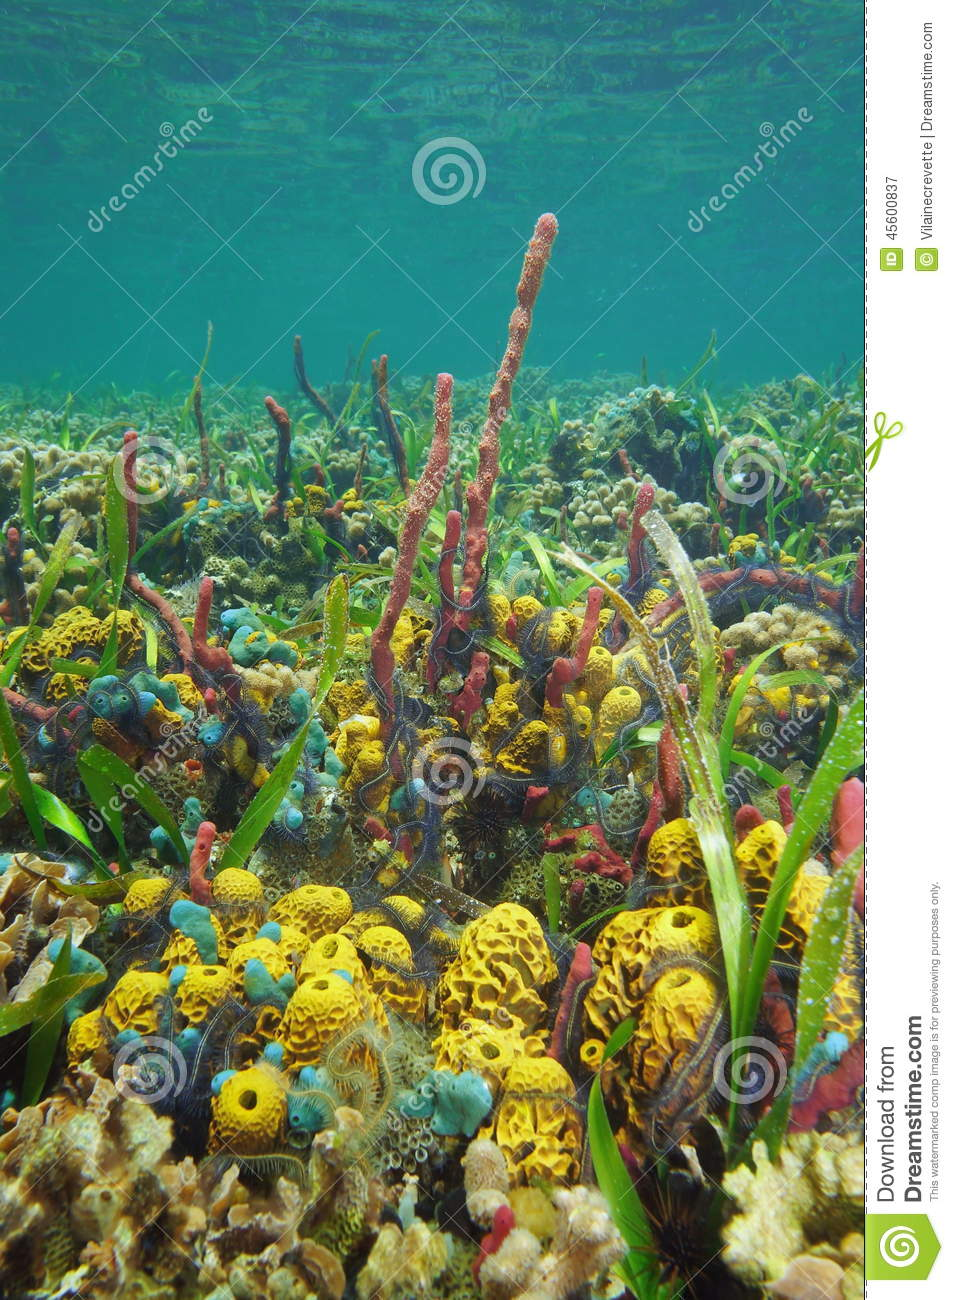 Underwater Scenery Colorful Marine Life Coral Reef Stock ... |Colorful Underwater Life